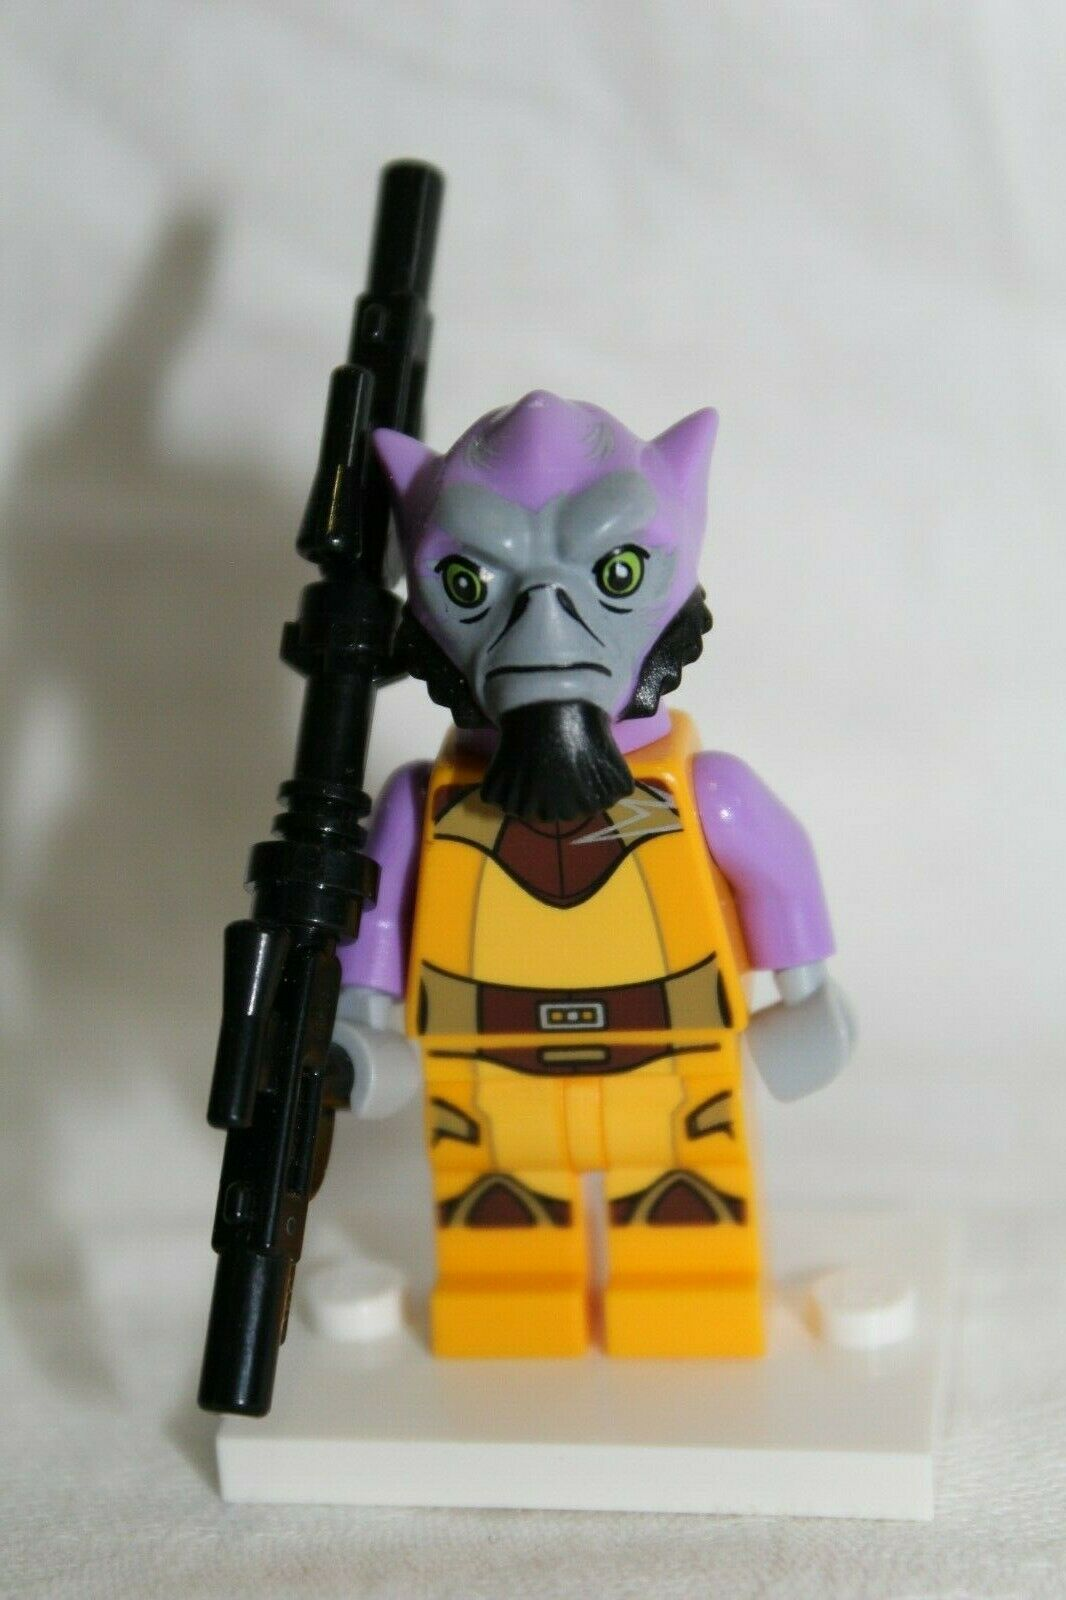 Star Wars Lego minifigure 75053 Zeb Orrelios sw0575 Pristine condition